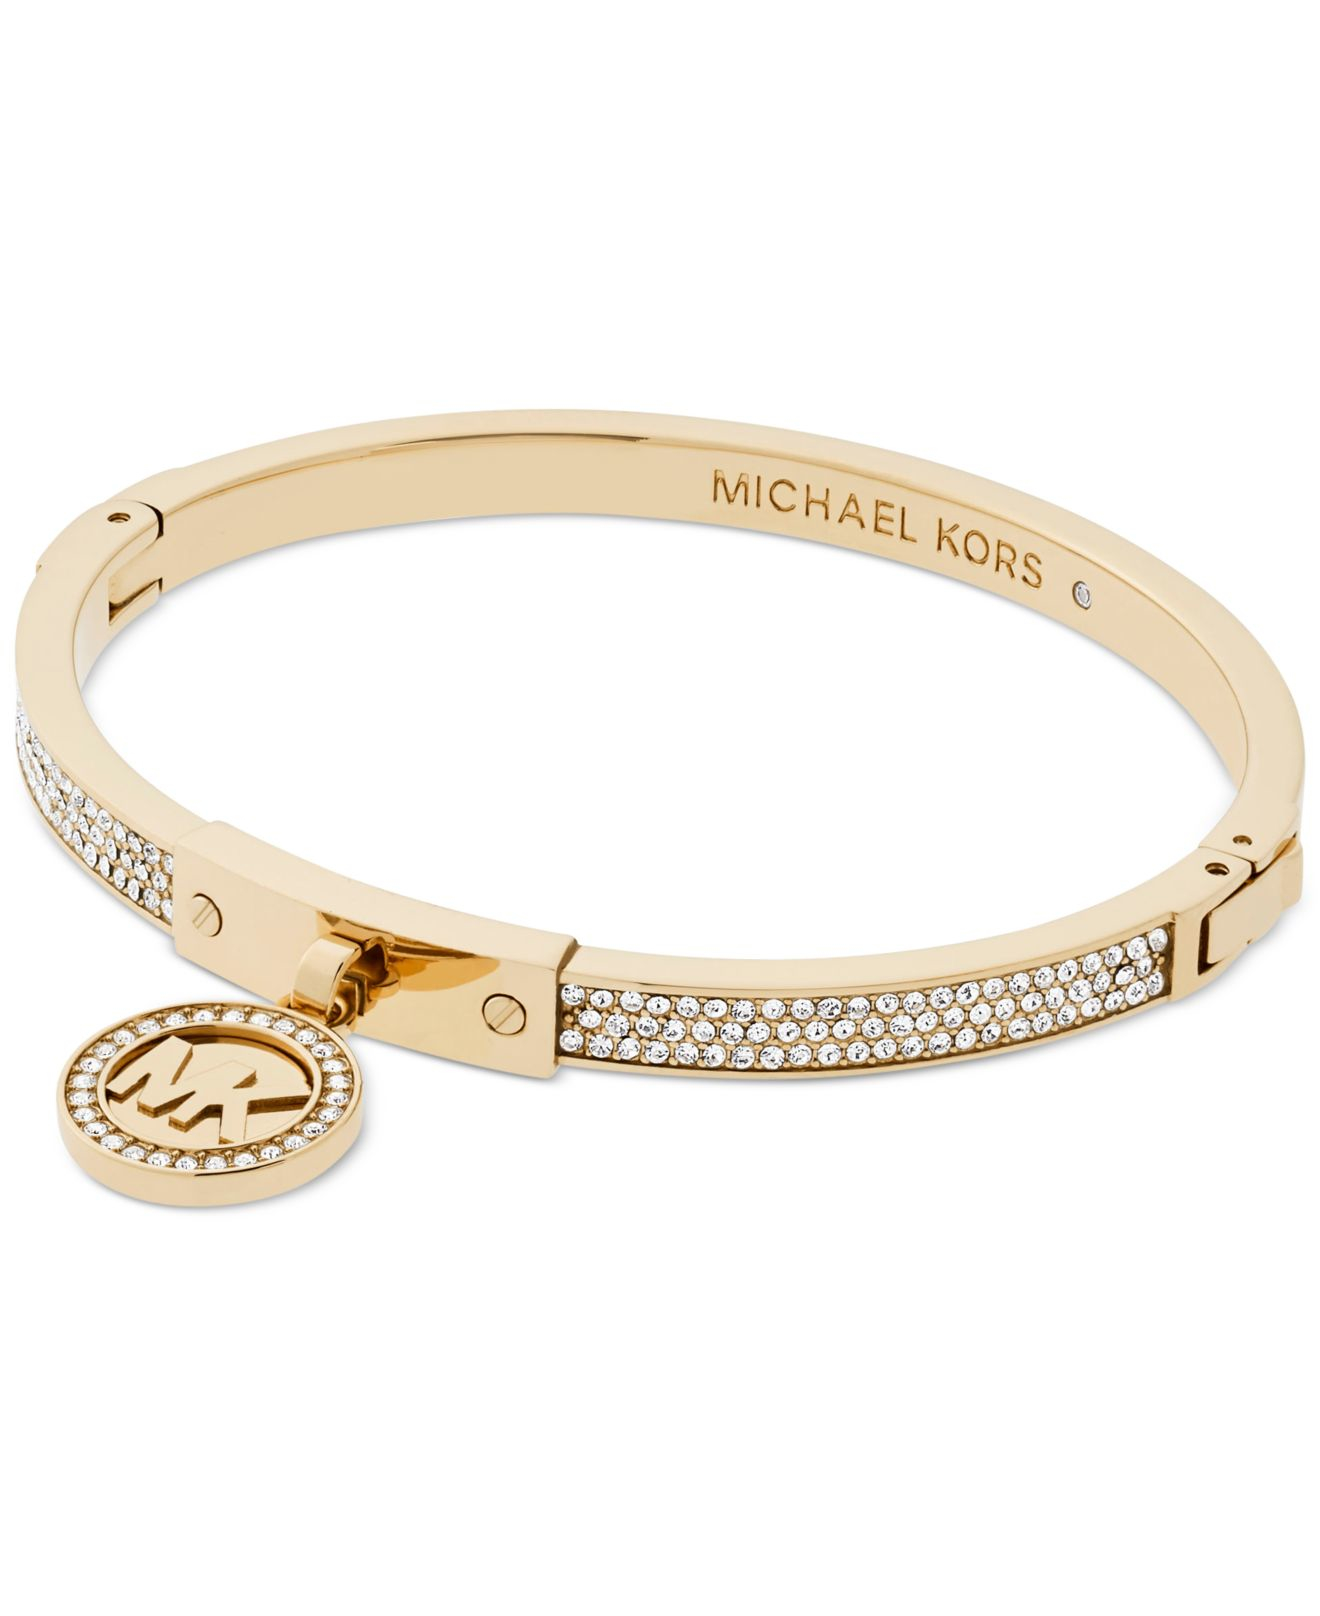 michael kors with bracelet michael kors logo pav 233 hinged bangle bracelet in metallic 9923